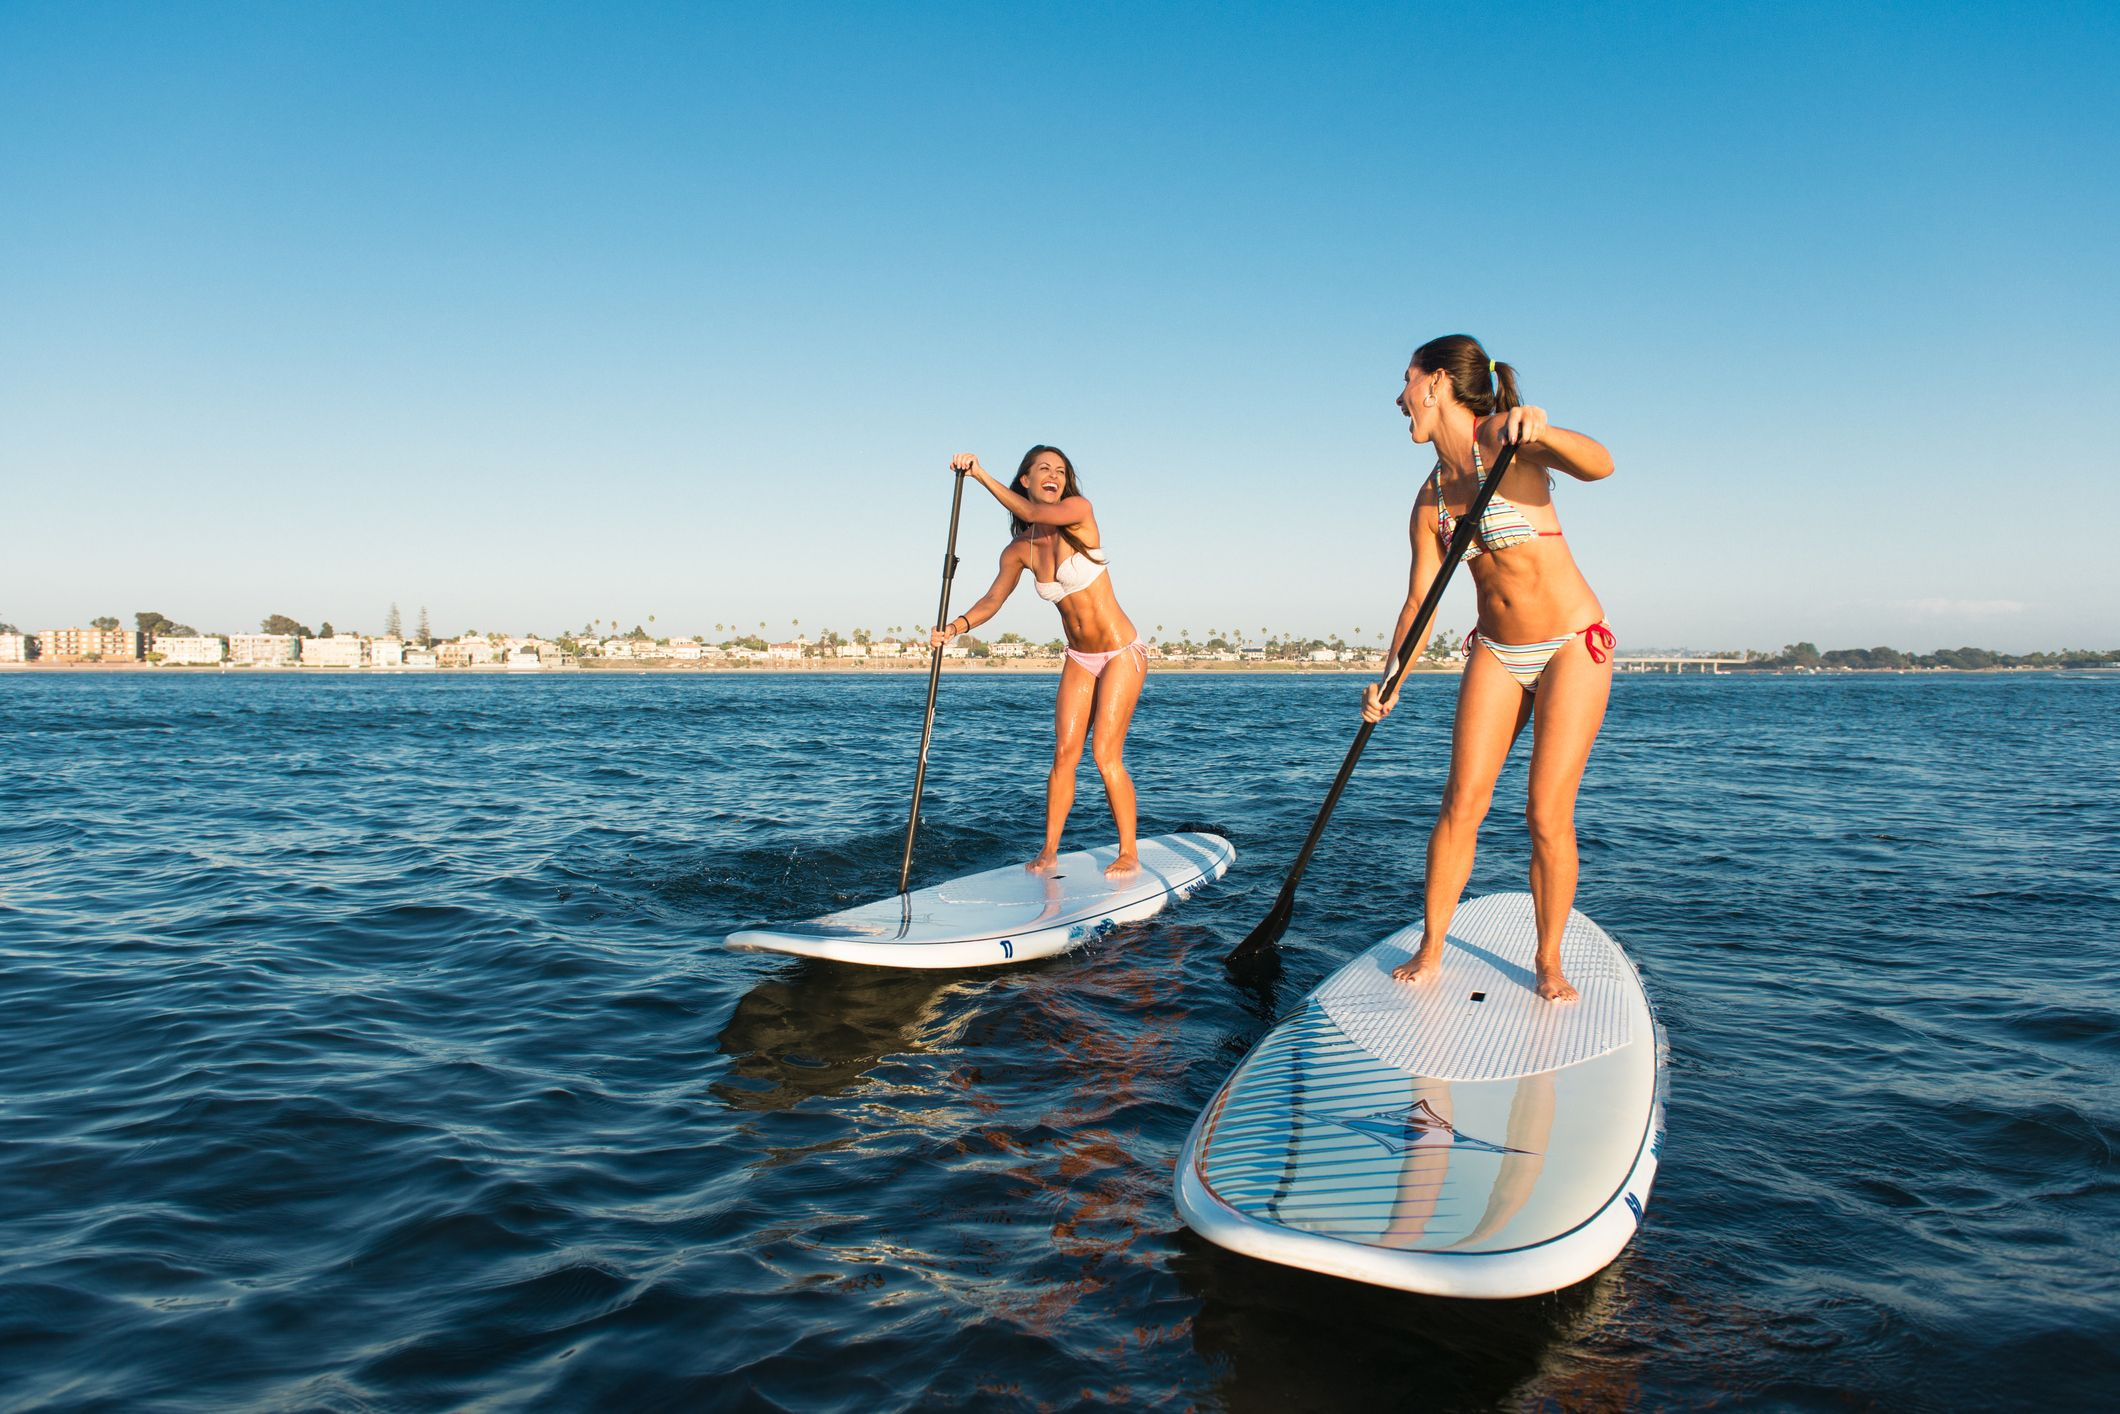 Two women chatting whilst stand up paddleboarding, Mission Bay, San Diego, California, USA